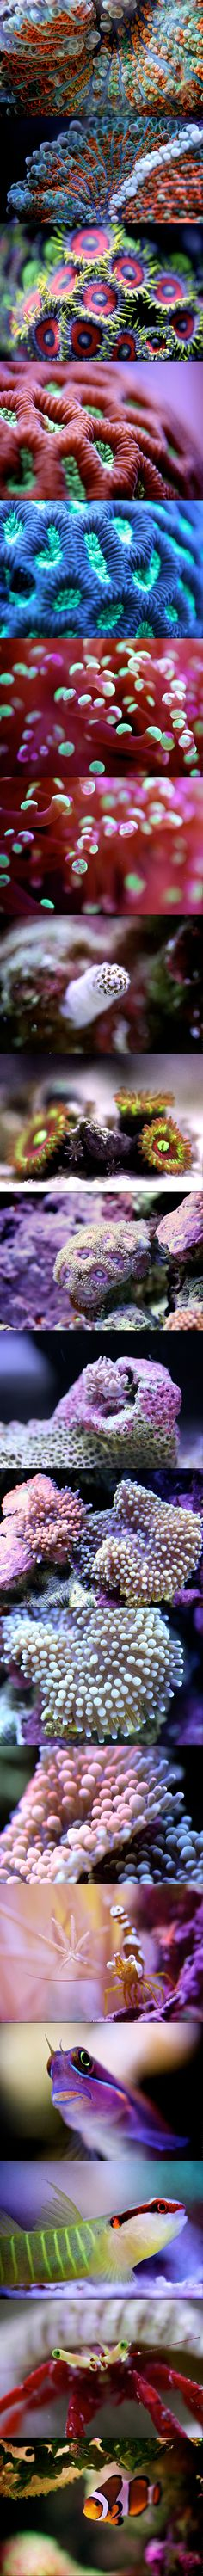 "Macro reef dwellers: a retrospective"" by Felix Salazar Underwater Creatures, Underwater Life, Ocean Creatures, Marine Aquarium, Reef Aquarium, Under The Ocean, Sea And Ocean, Poisson Mandarin, Foto Macro"